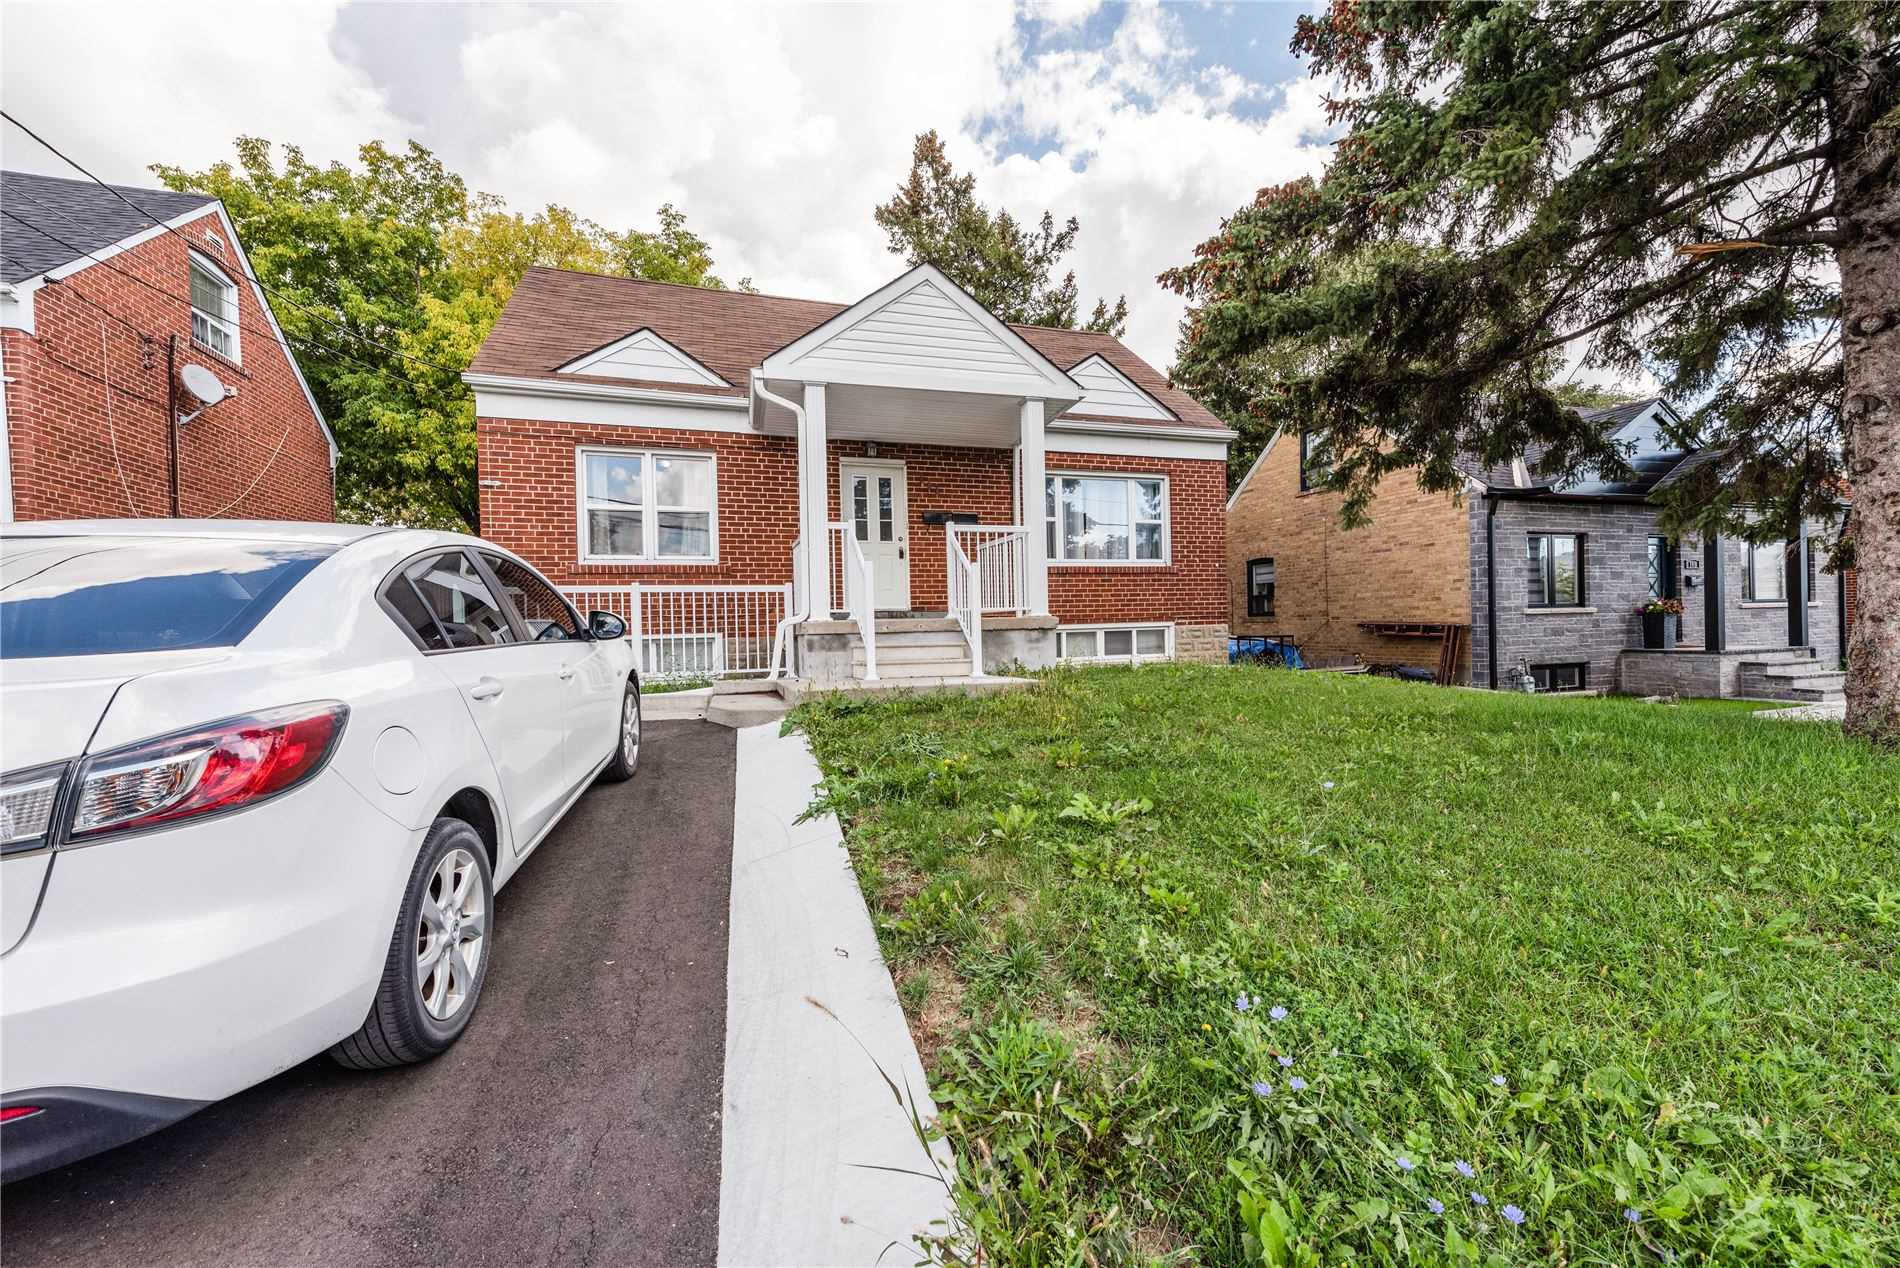 Detached house For Lease In Toronto - 111 Jethro Rd, Toronto, Ontario, Canada M3L1H1 , 4 Bedrooms Bedrooms, ,2 BathroomsBathrooms,Detached,For Lease,Jethro